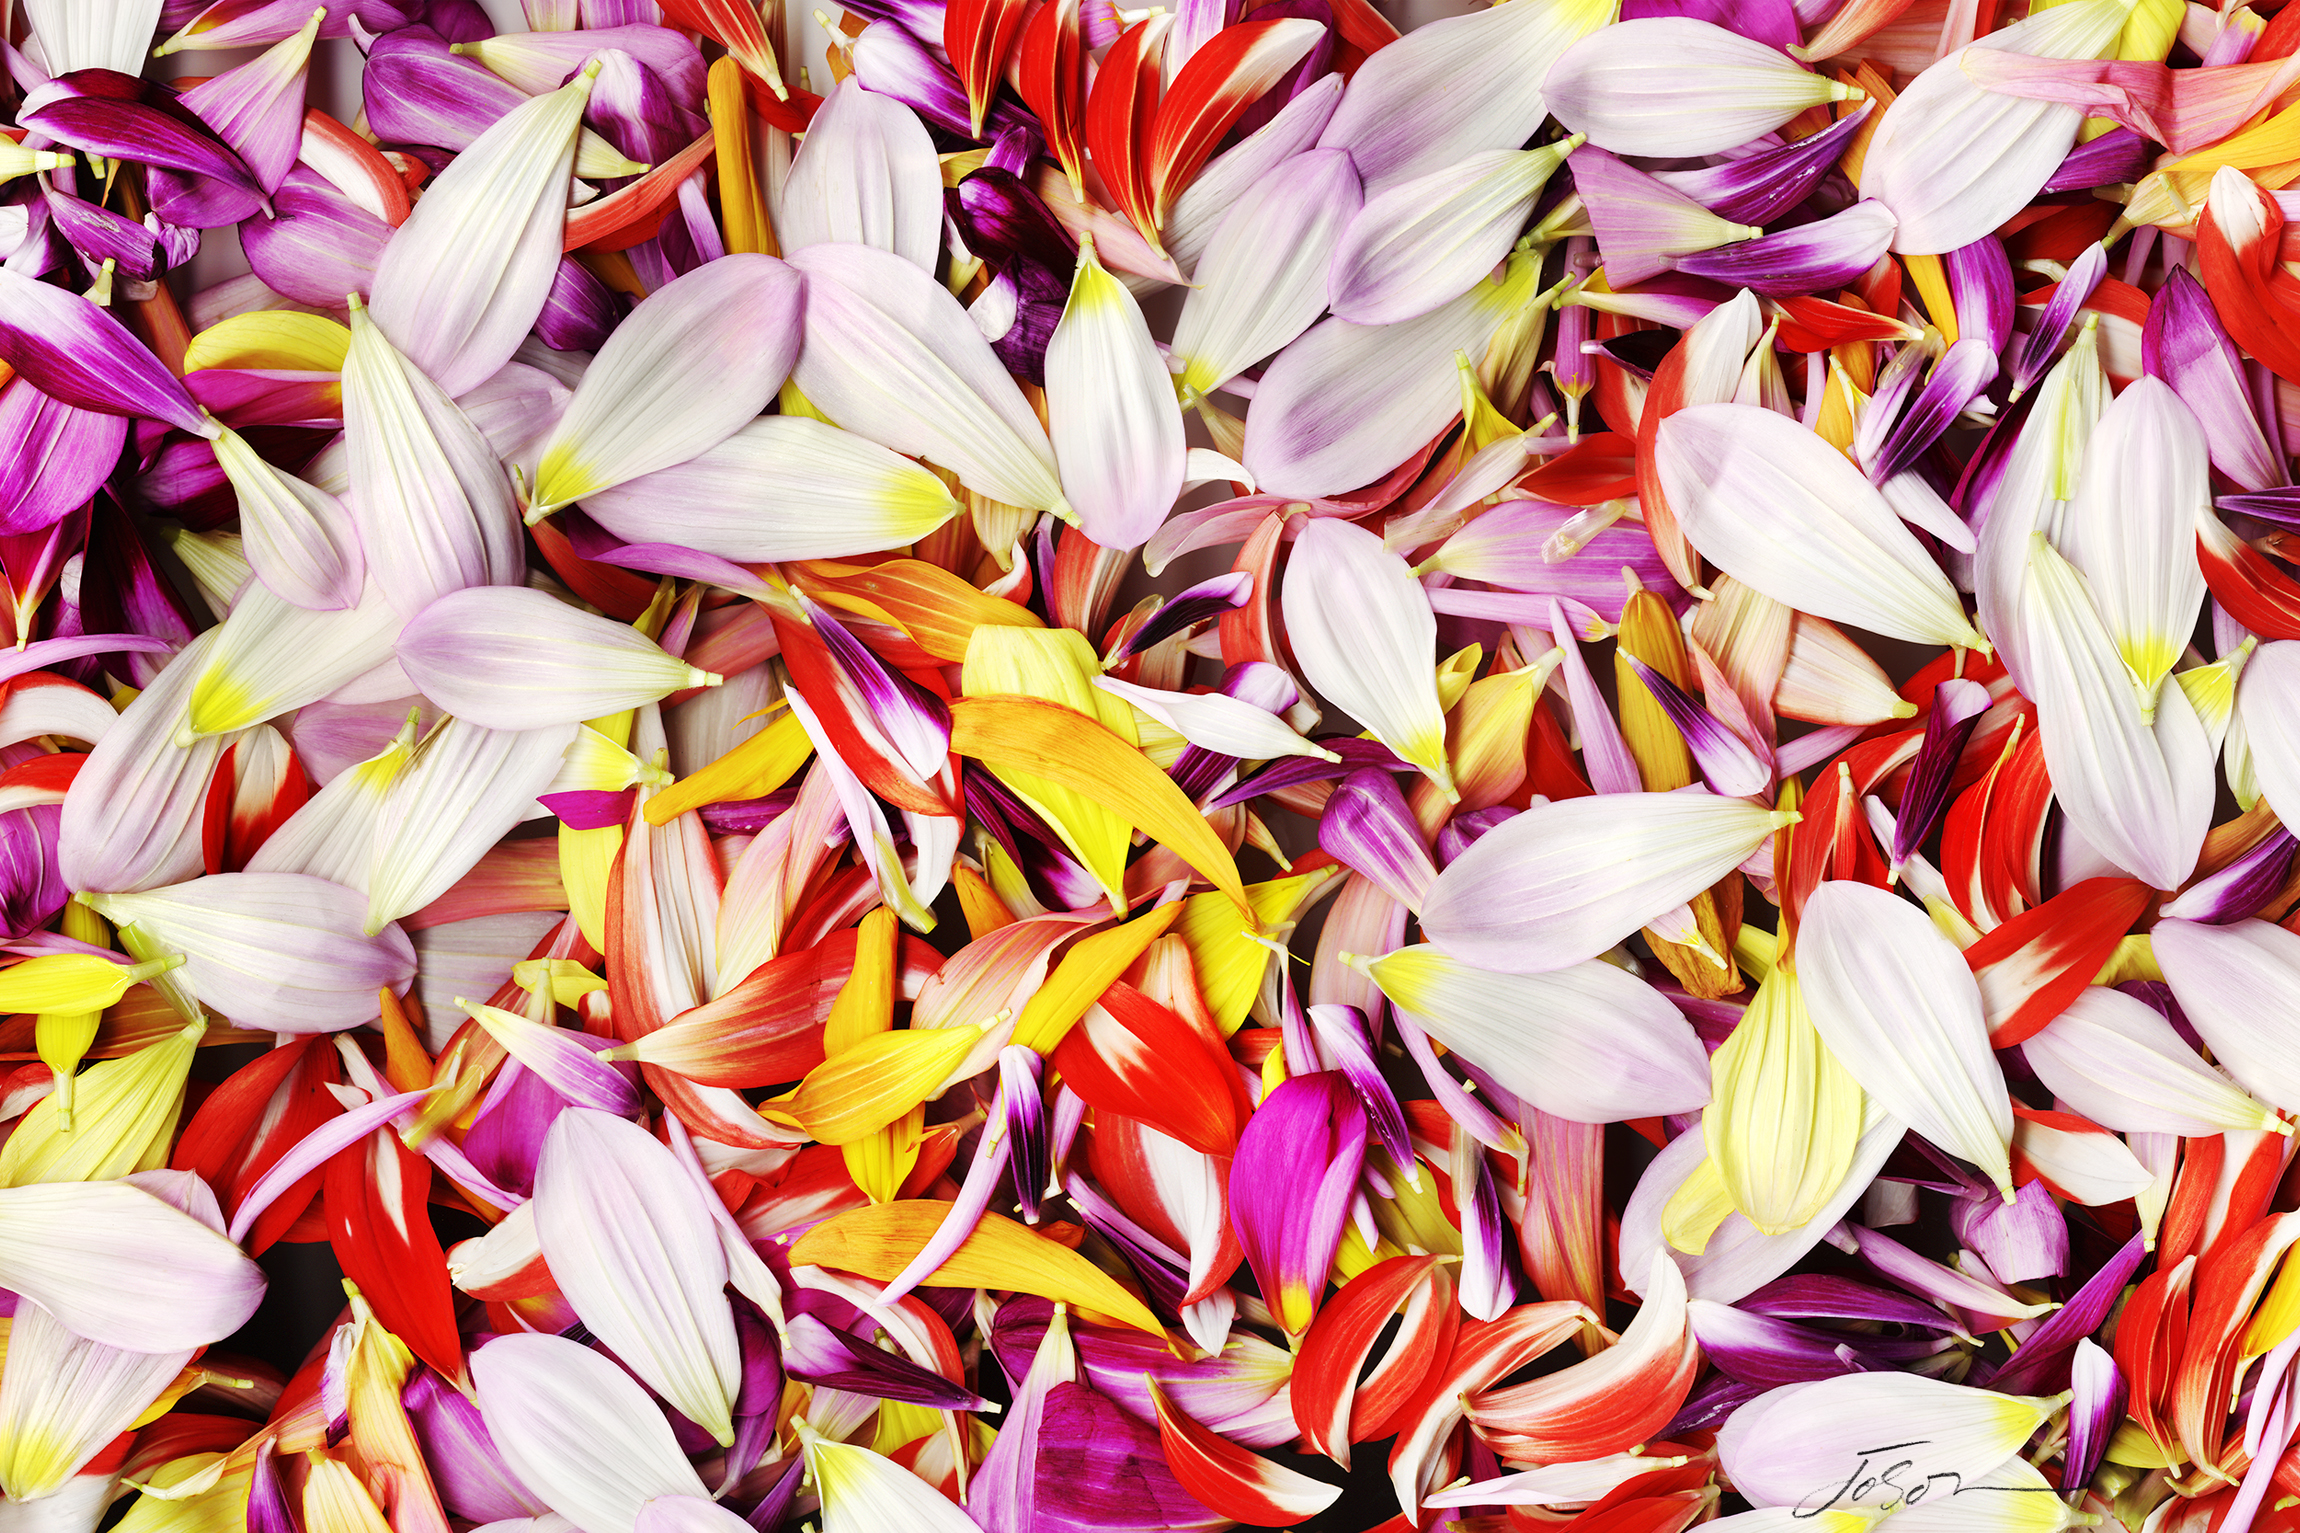 Colorful Dahlia  Petals by joSon